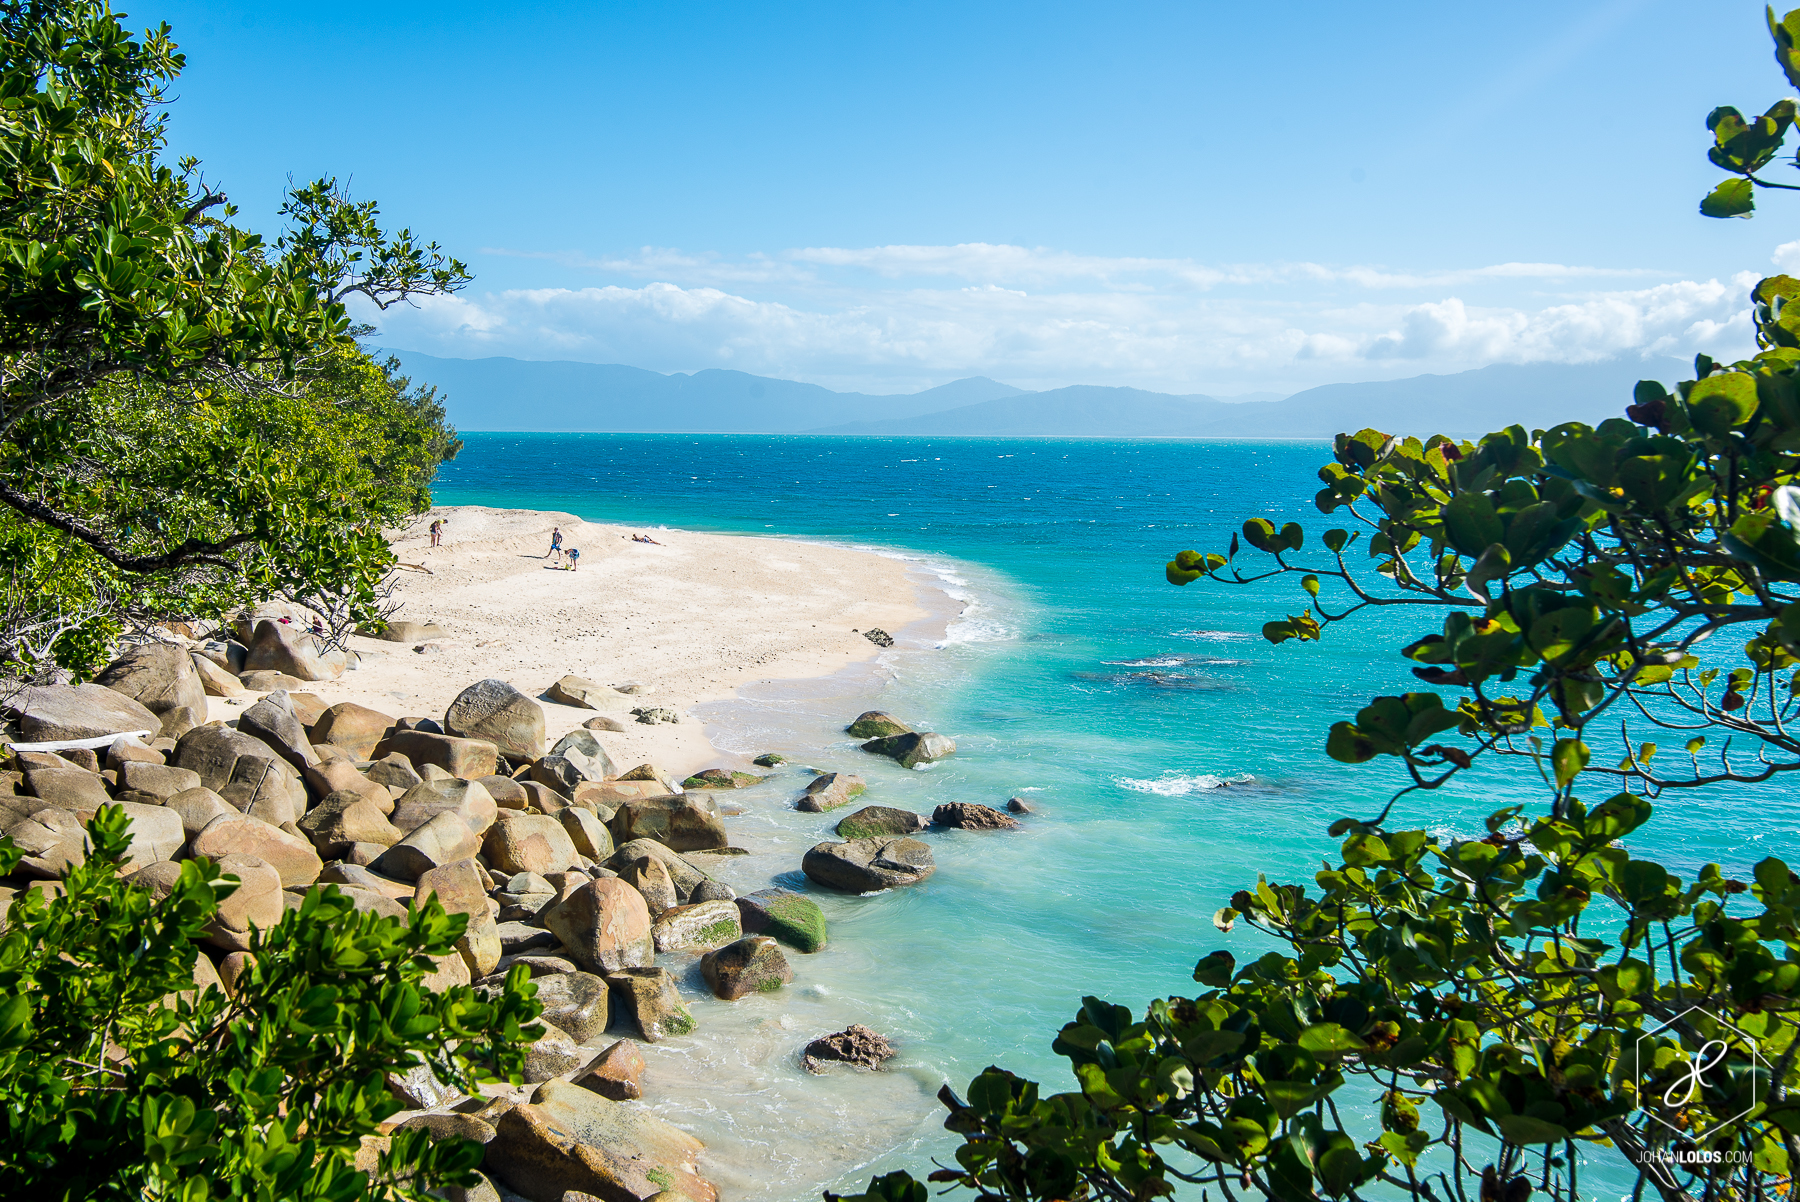 tourism-tropical-north-queensland-pfhnoeee6styw6h.jpg